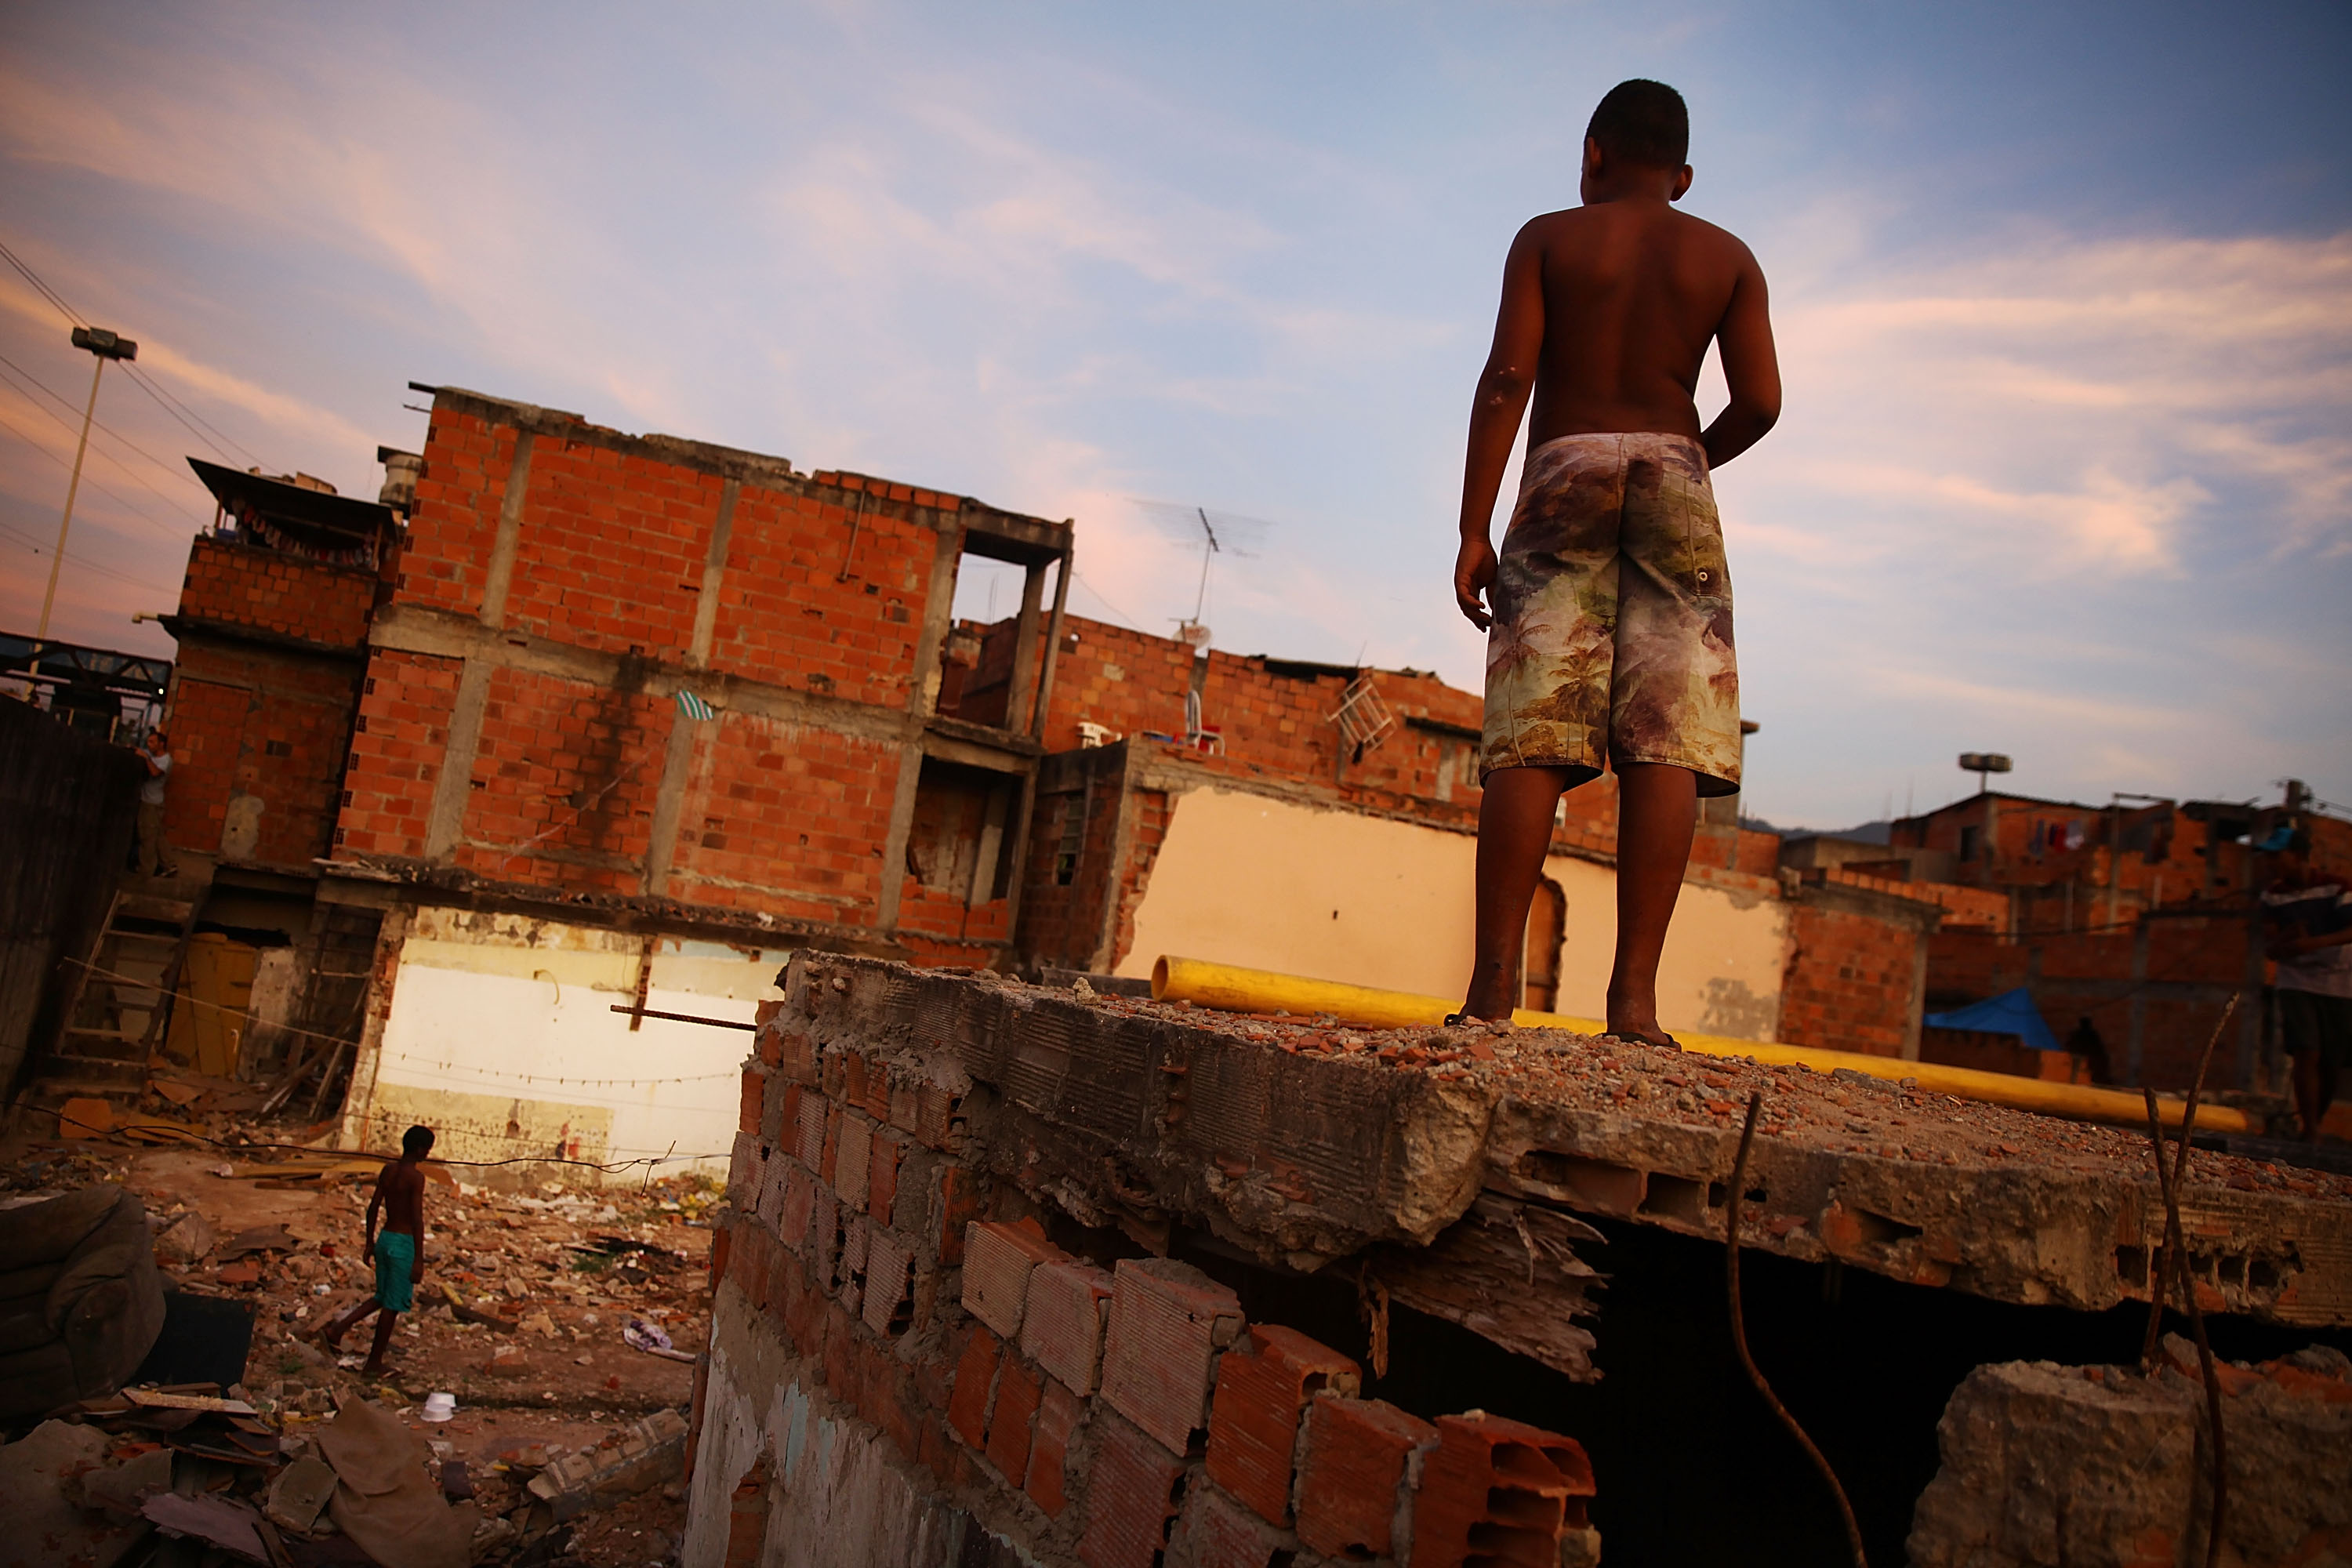 A boy stands on a roof near the remains of demolished homes in the Metro Mangueira favela, located near Maracana stadium, on May 22, 2014 in Rio de Janeiro.